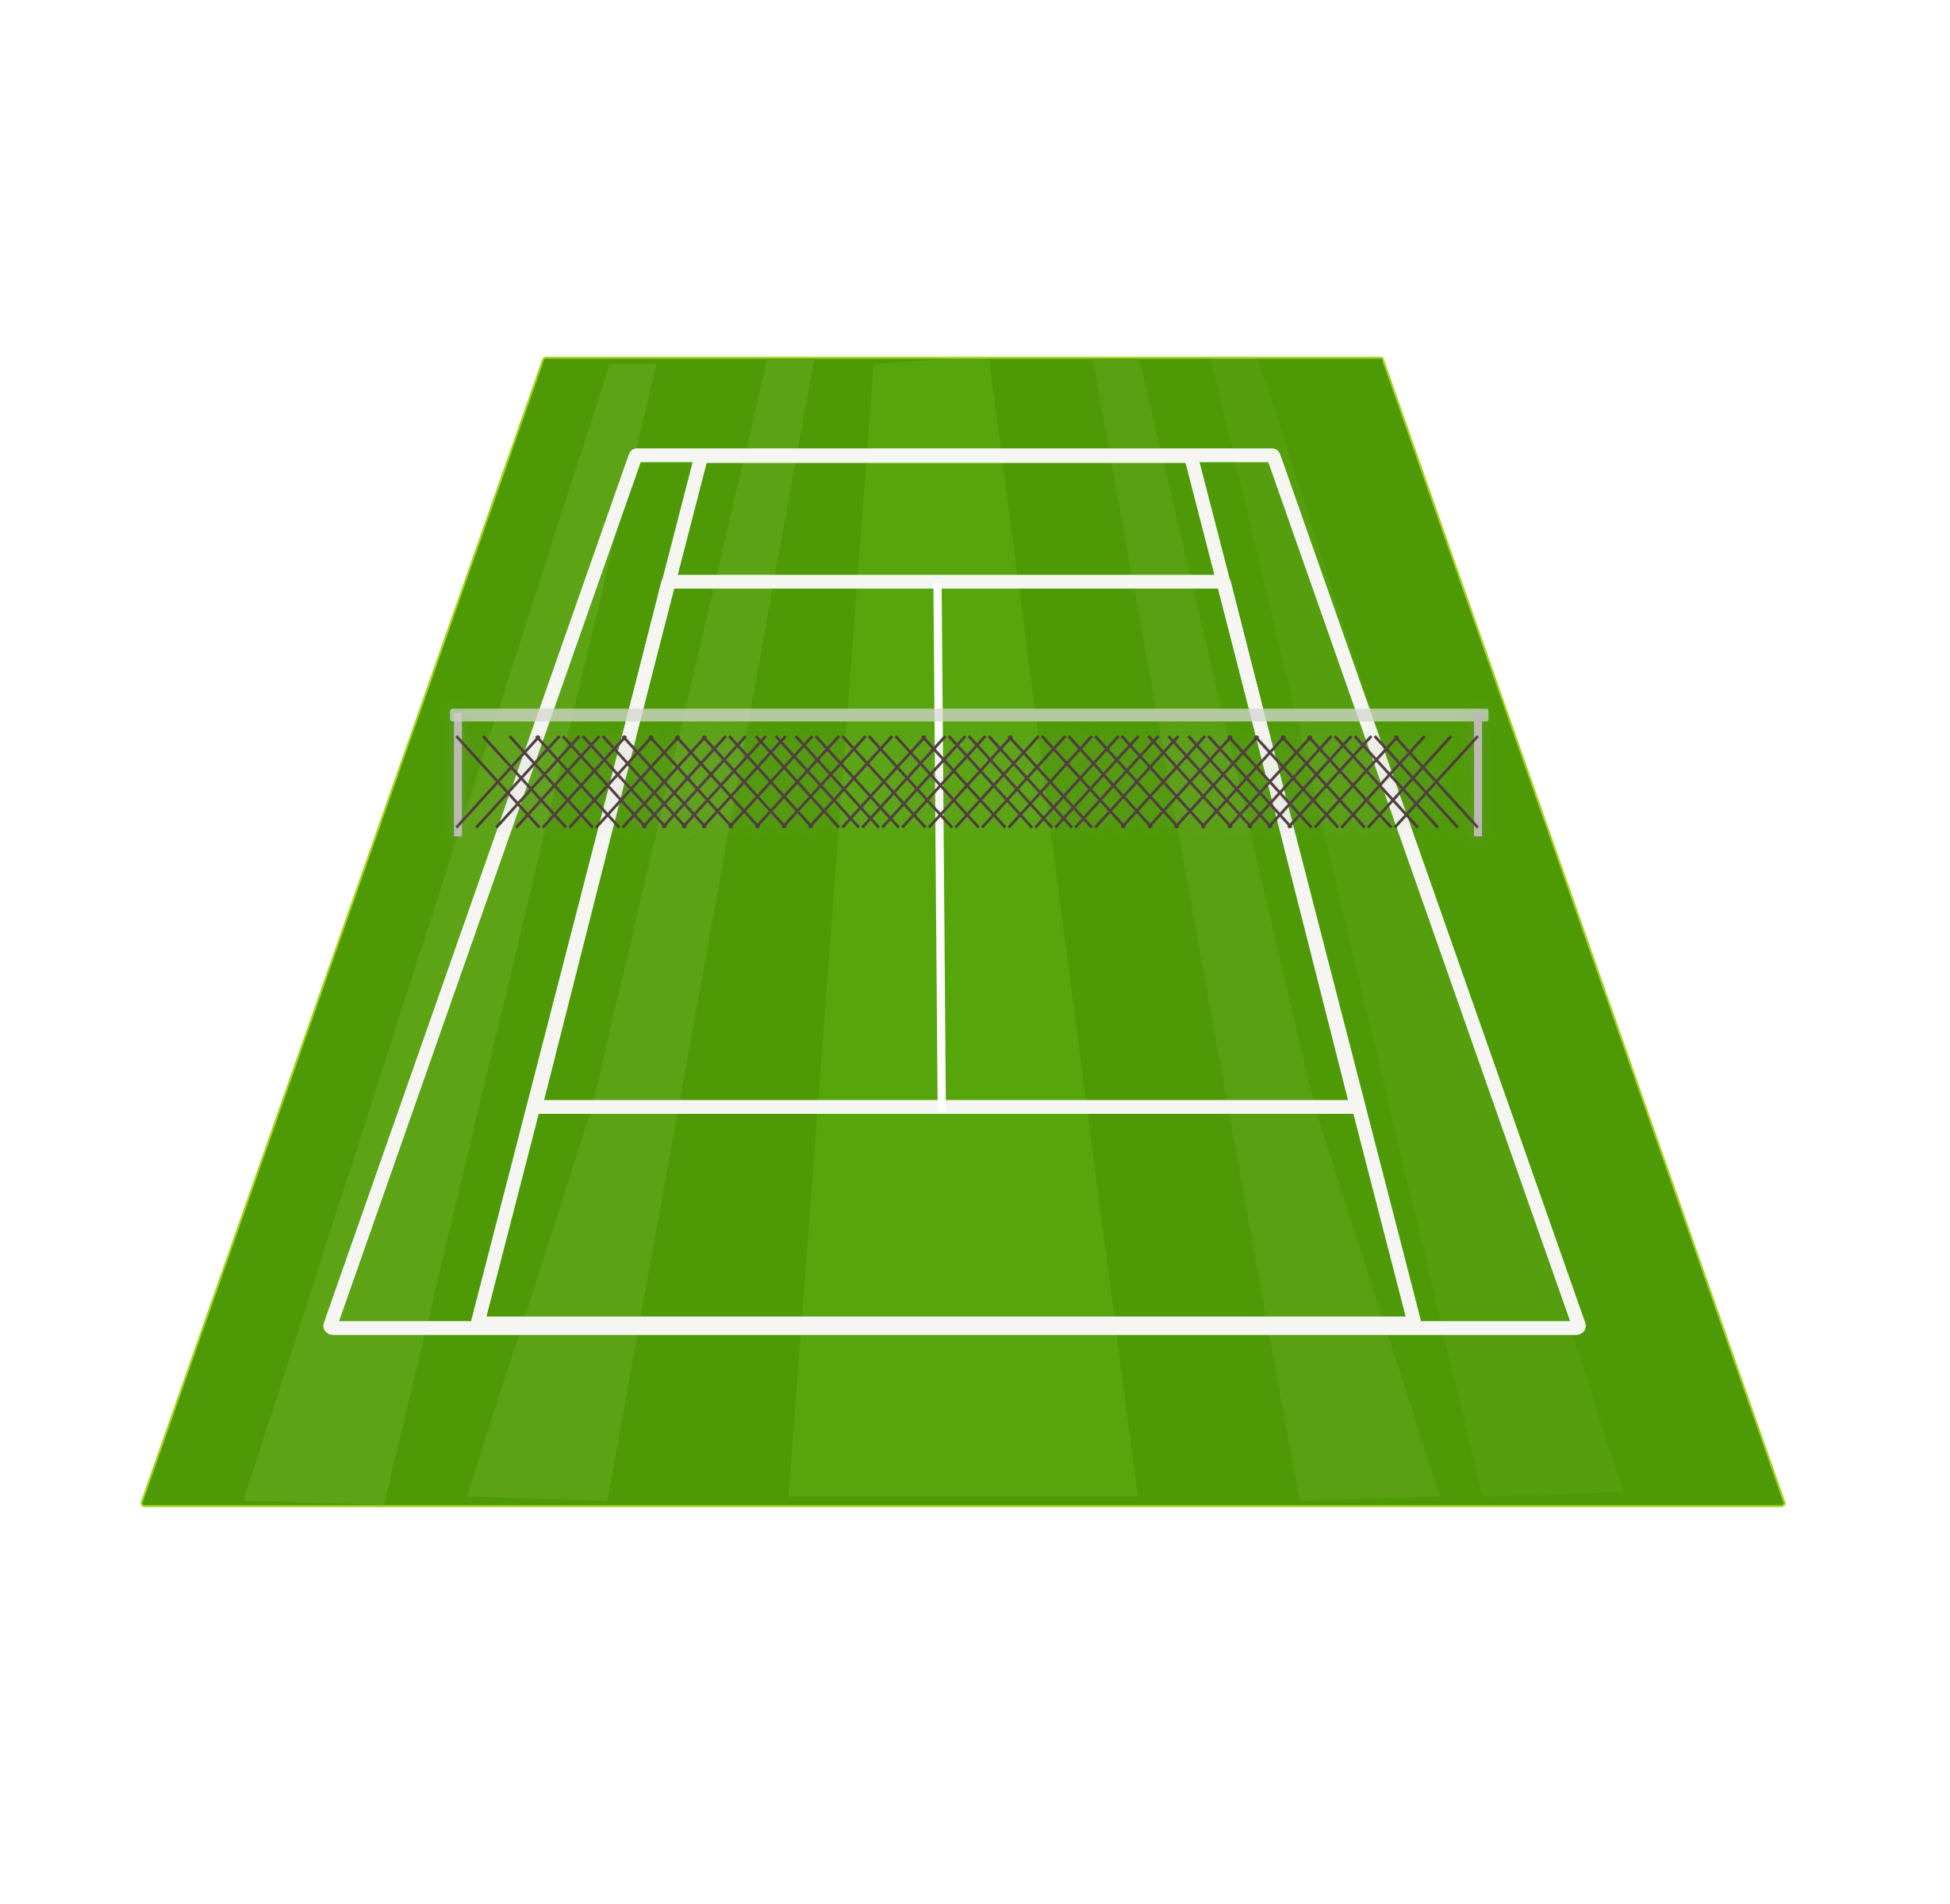 Match clipart tennis court Tennis top Free 2 Pictures